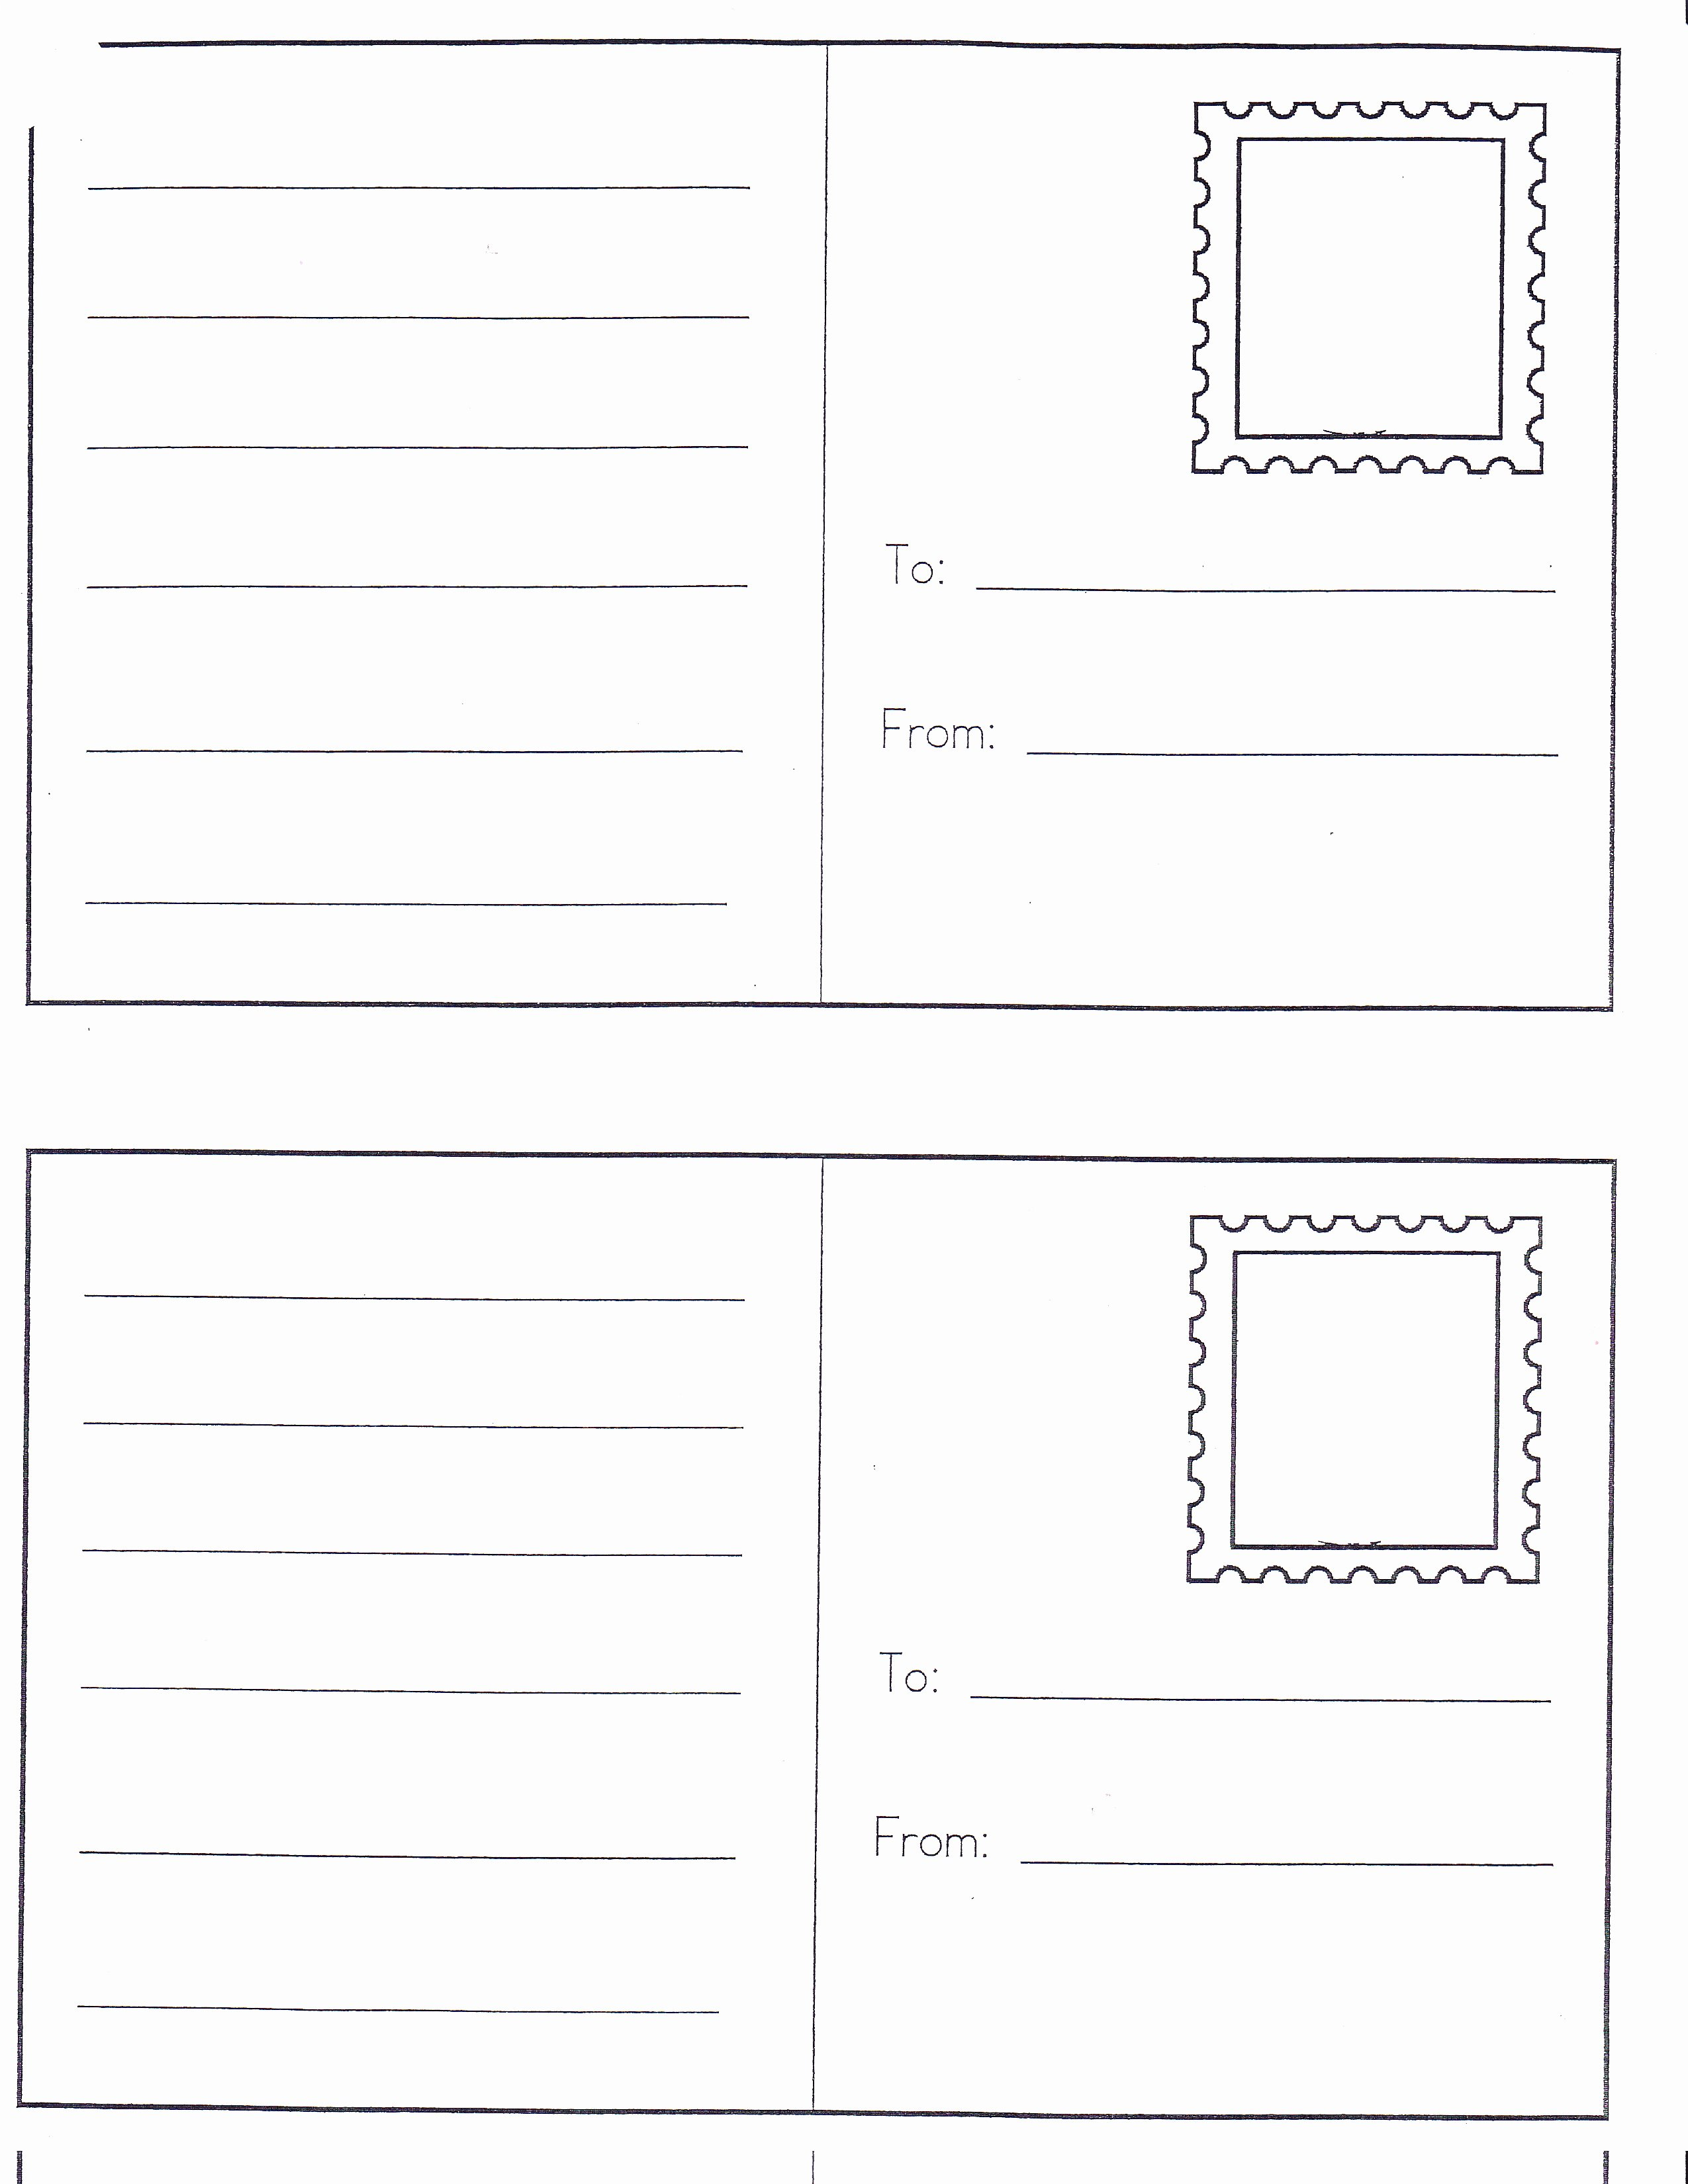 Post It Print Template Luxury Best Ideas Postcard Template Free Unique Free Printable